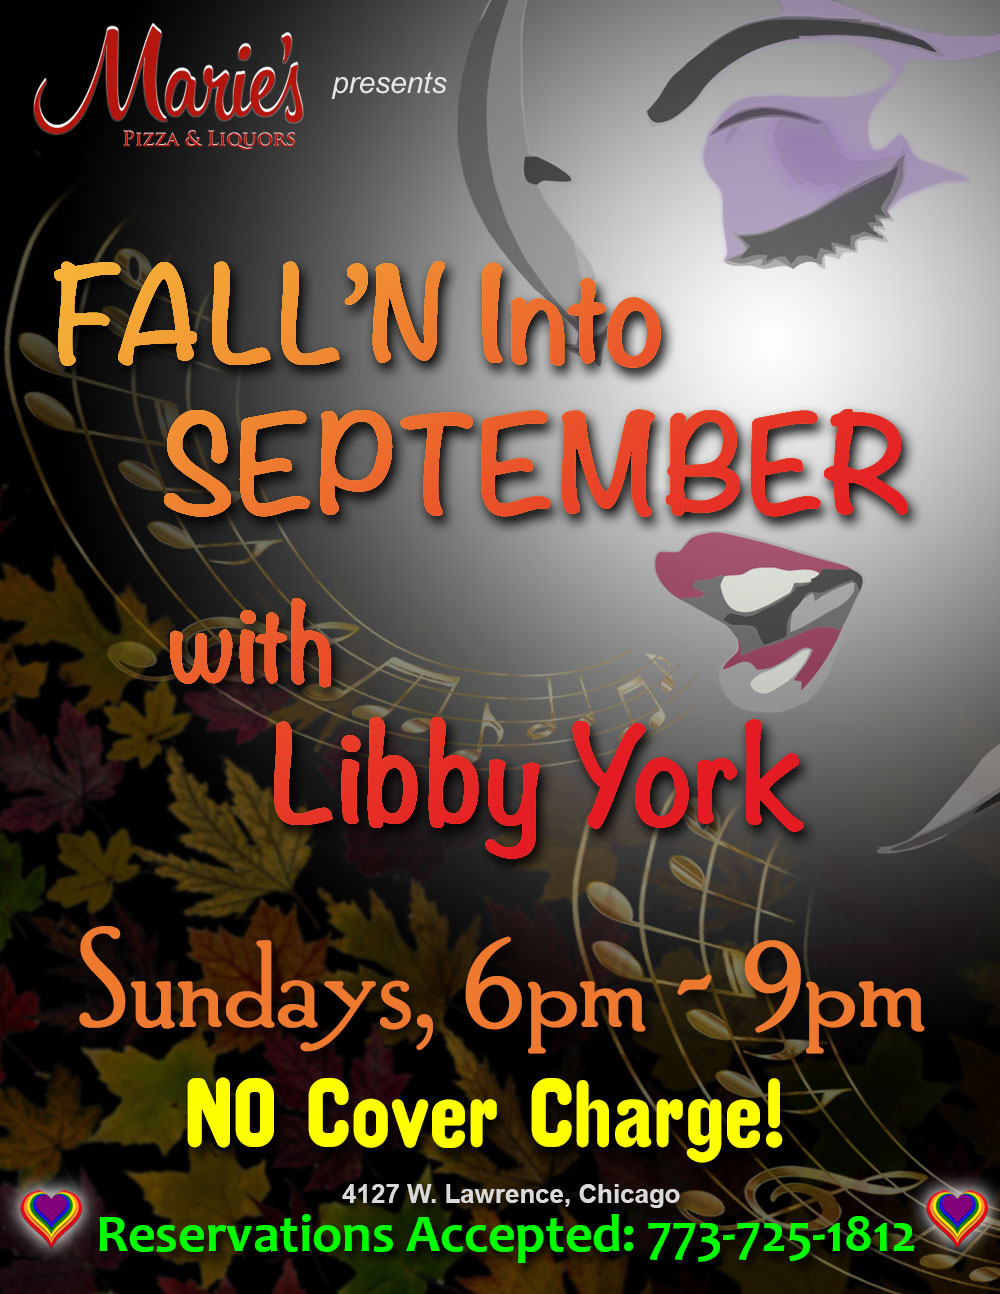 Marie's Pizza & Liquors presents FALL'N Into September with Libby York